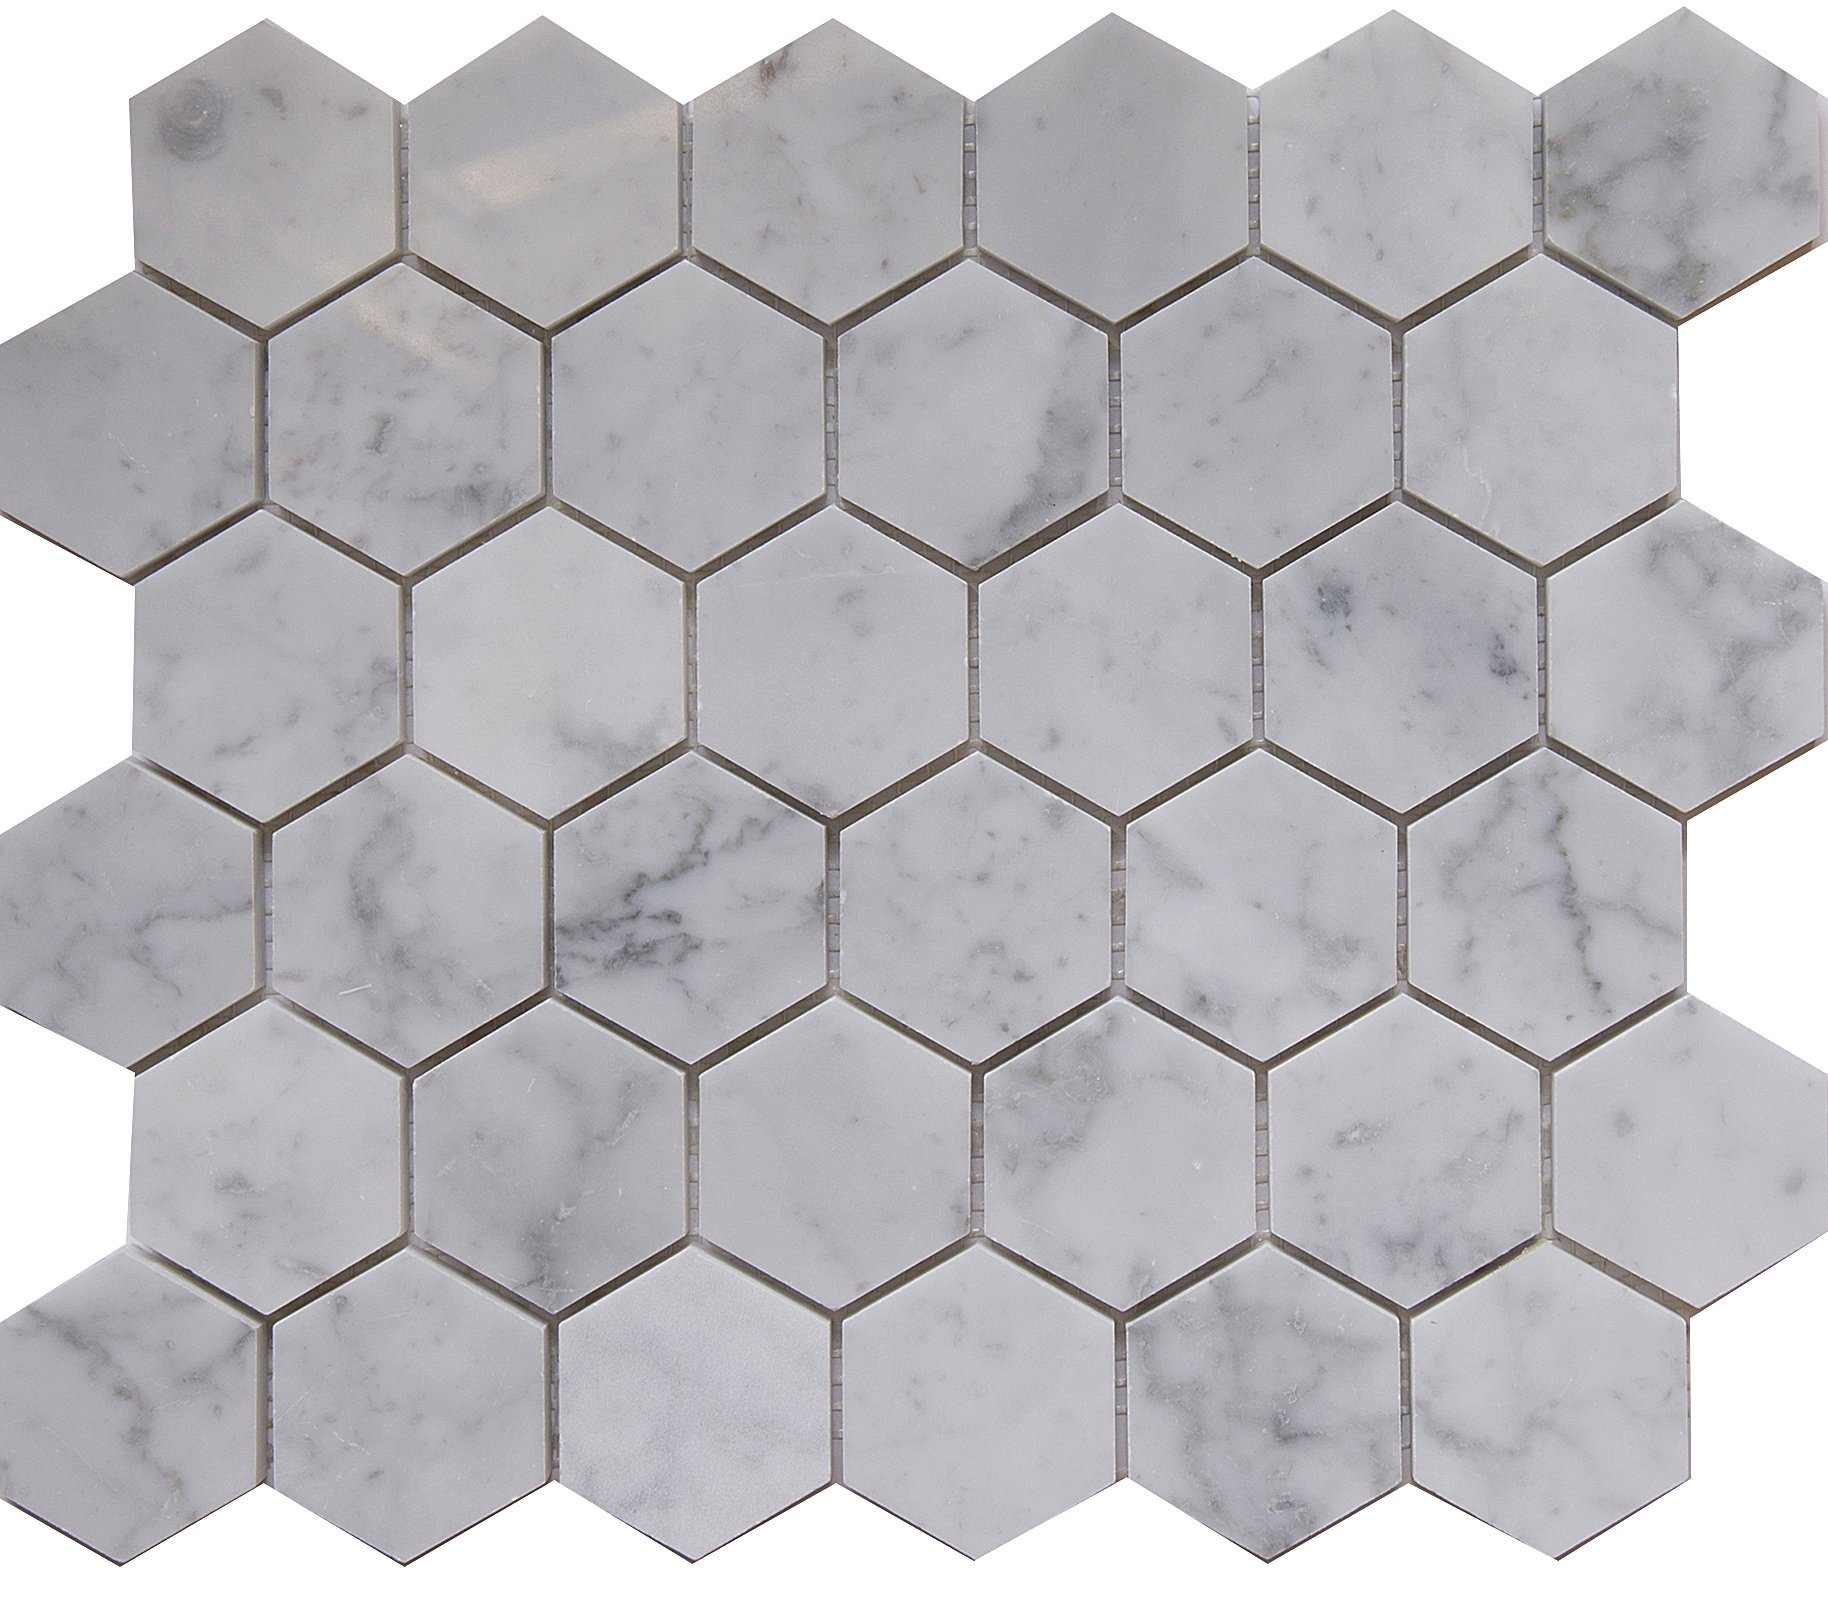 Carrara White Marble Mosaic Tile, CWMM2HEX-H, Chip Size 2'' Hexagon, 12''X10''X3/8'', Honed (Box of 5 Sheets)